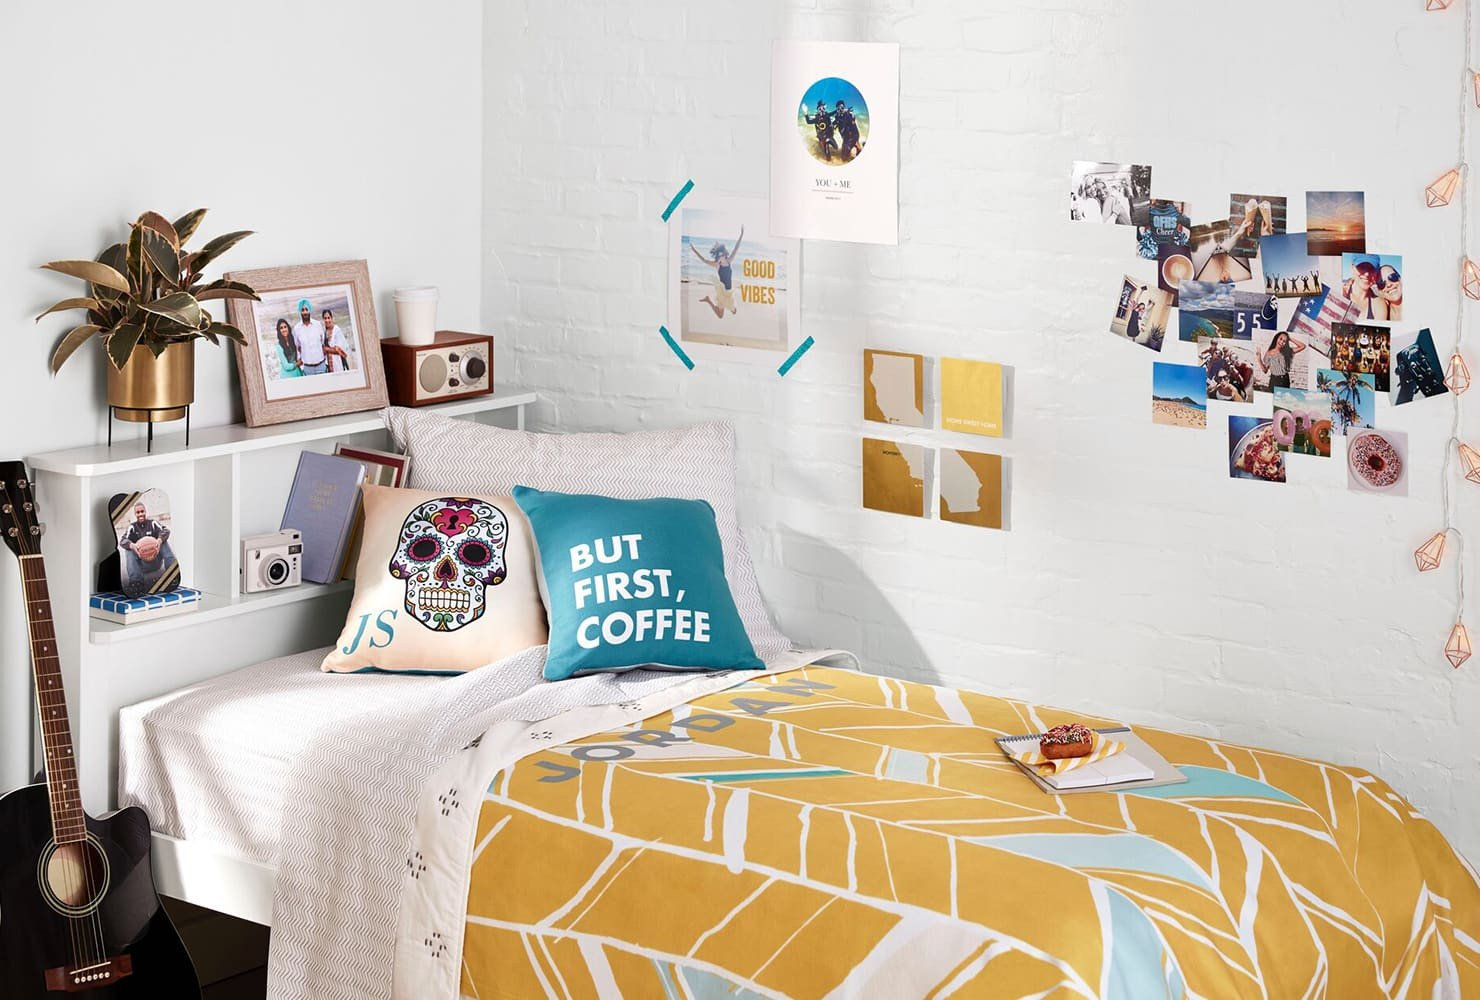 Wall Decor for Dorm Rooms Best Of 37 Creative Diy Dorm Decor Ideas to Liven Up Your Space